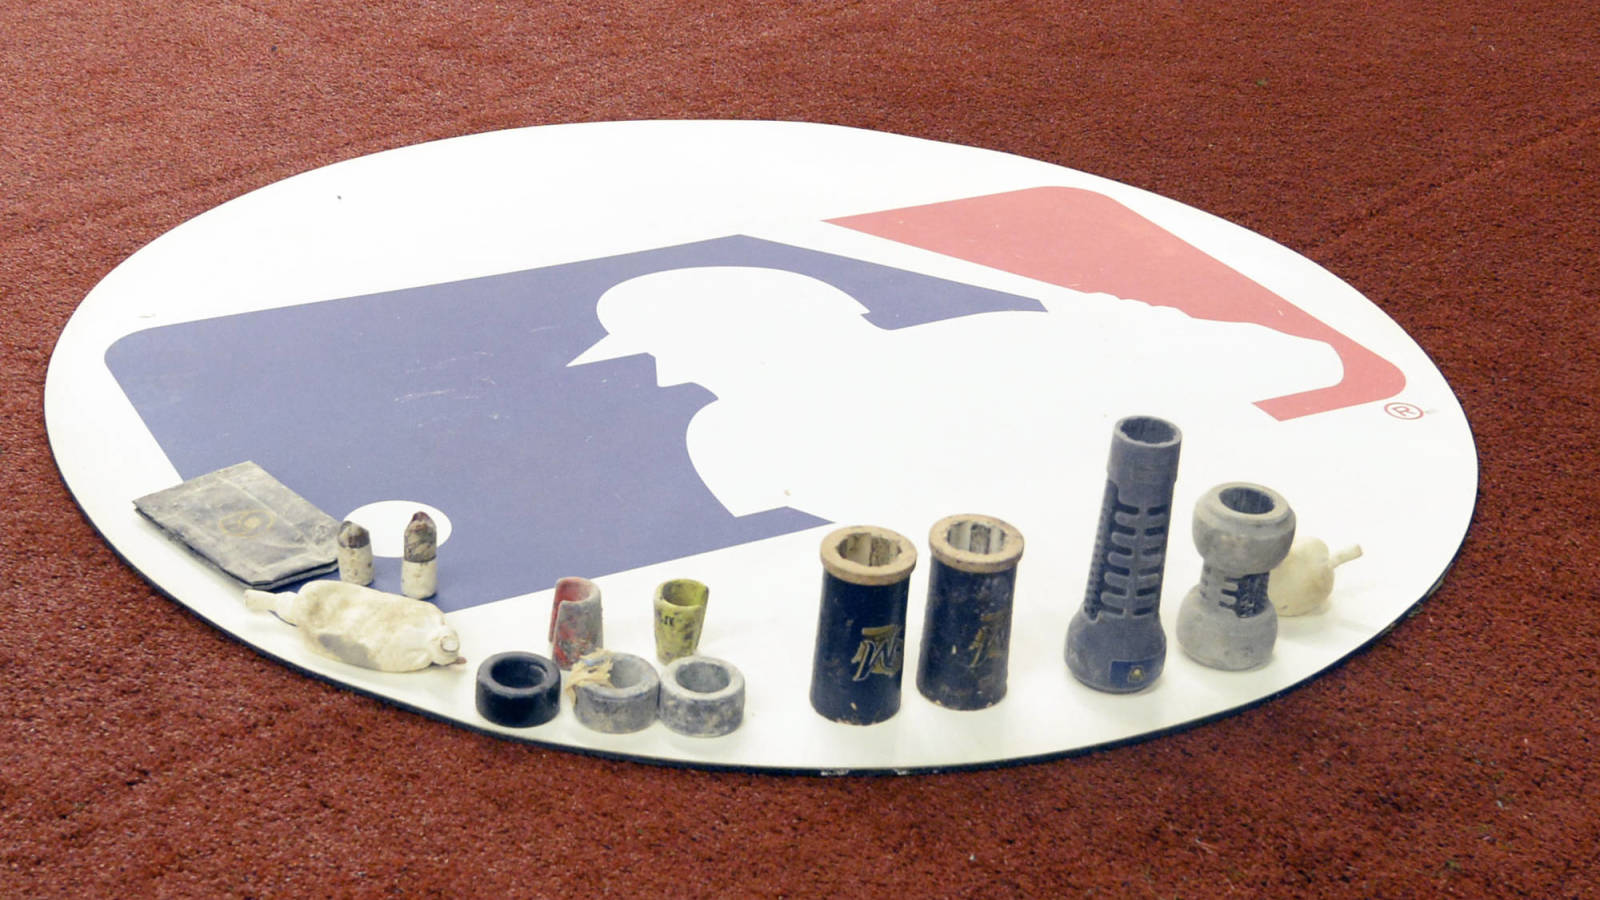 Mlb-announces-opening-day-date-2022-season